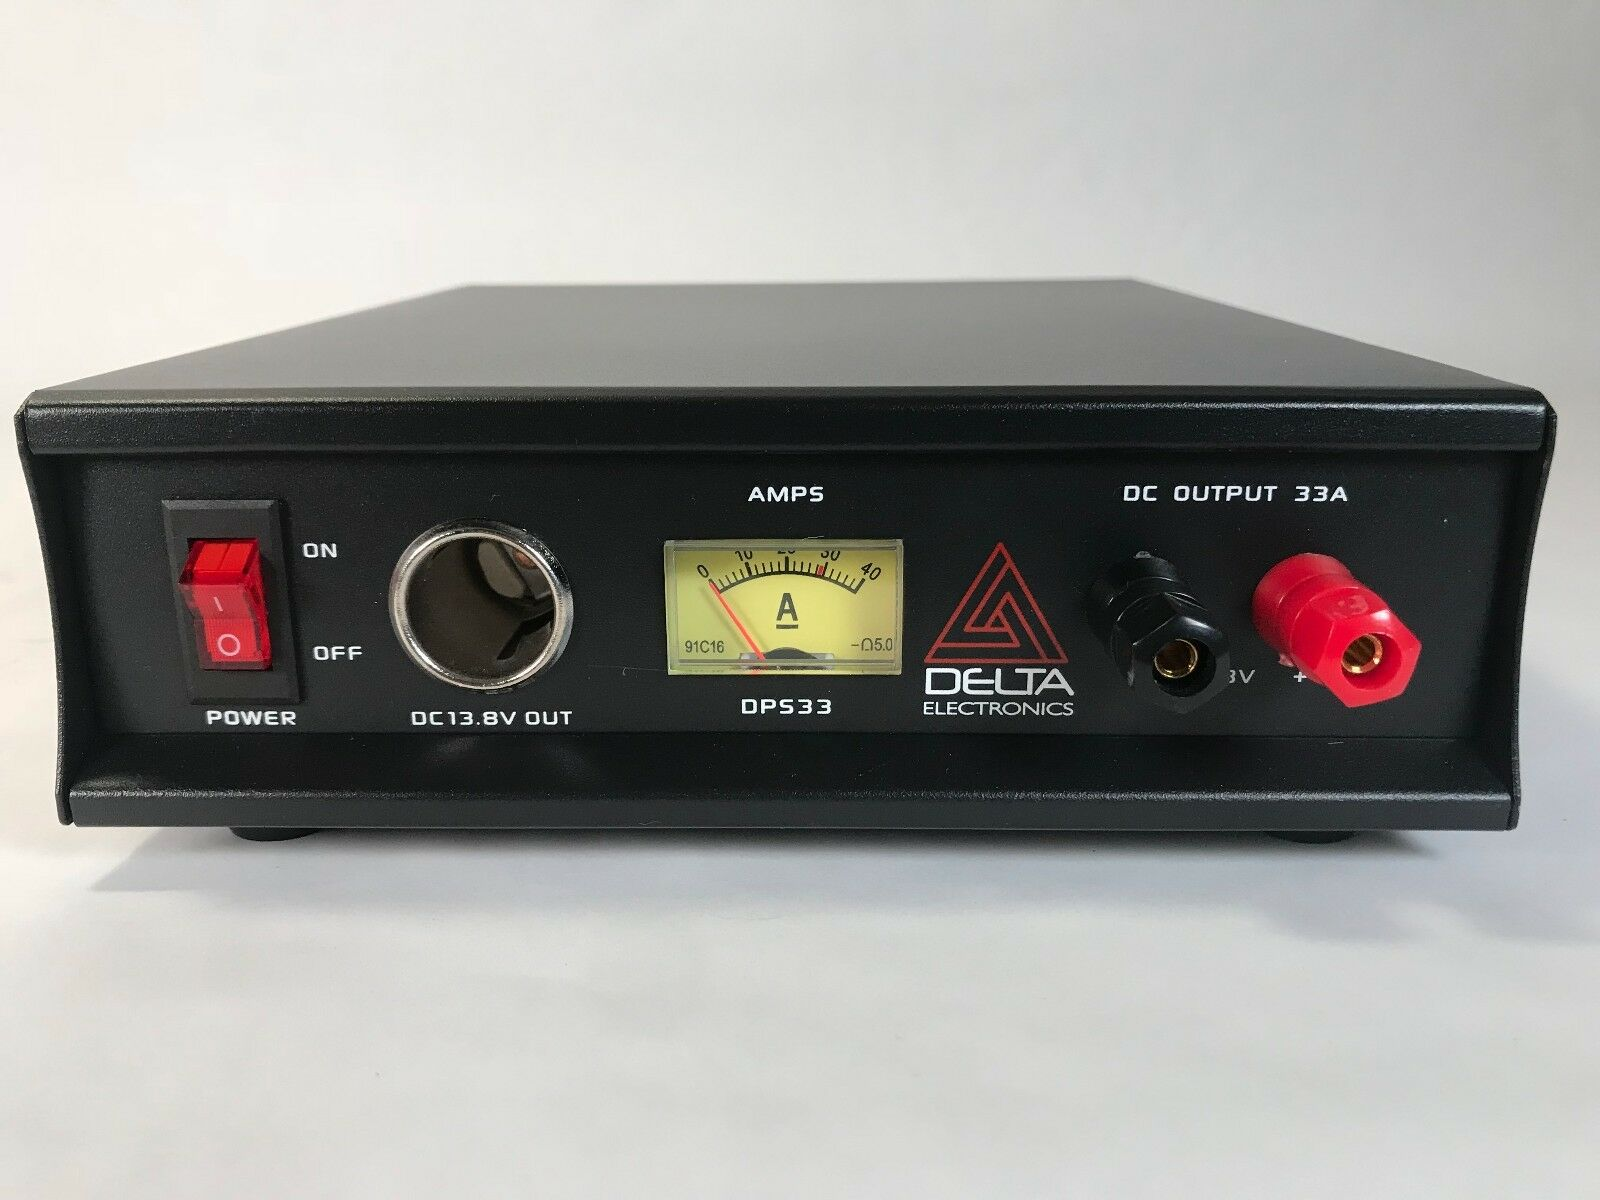 DELTA DPS33 33 Amp 12-13.8v AC/DC Power Supply w/ Volt AMP Meter Ham CB Radio . Available Now for 139.95